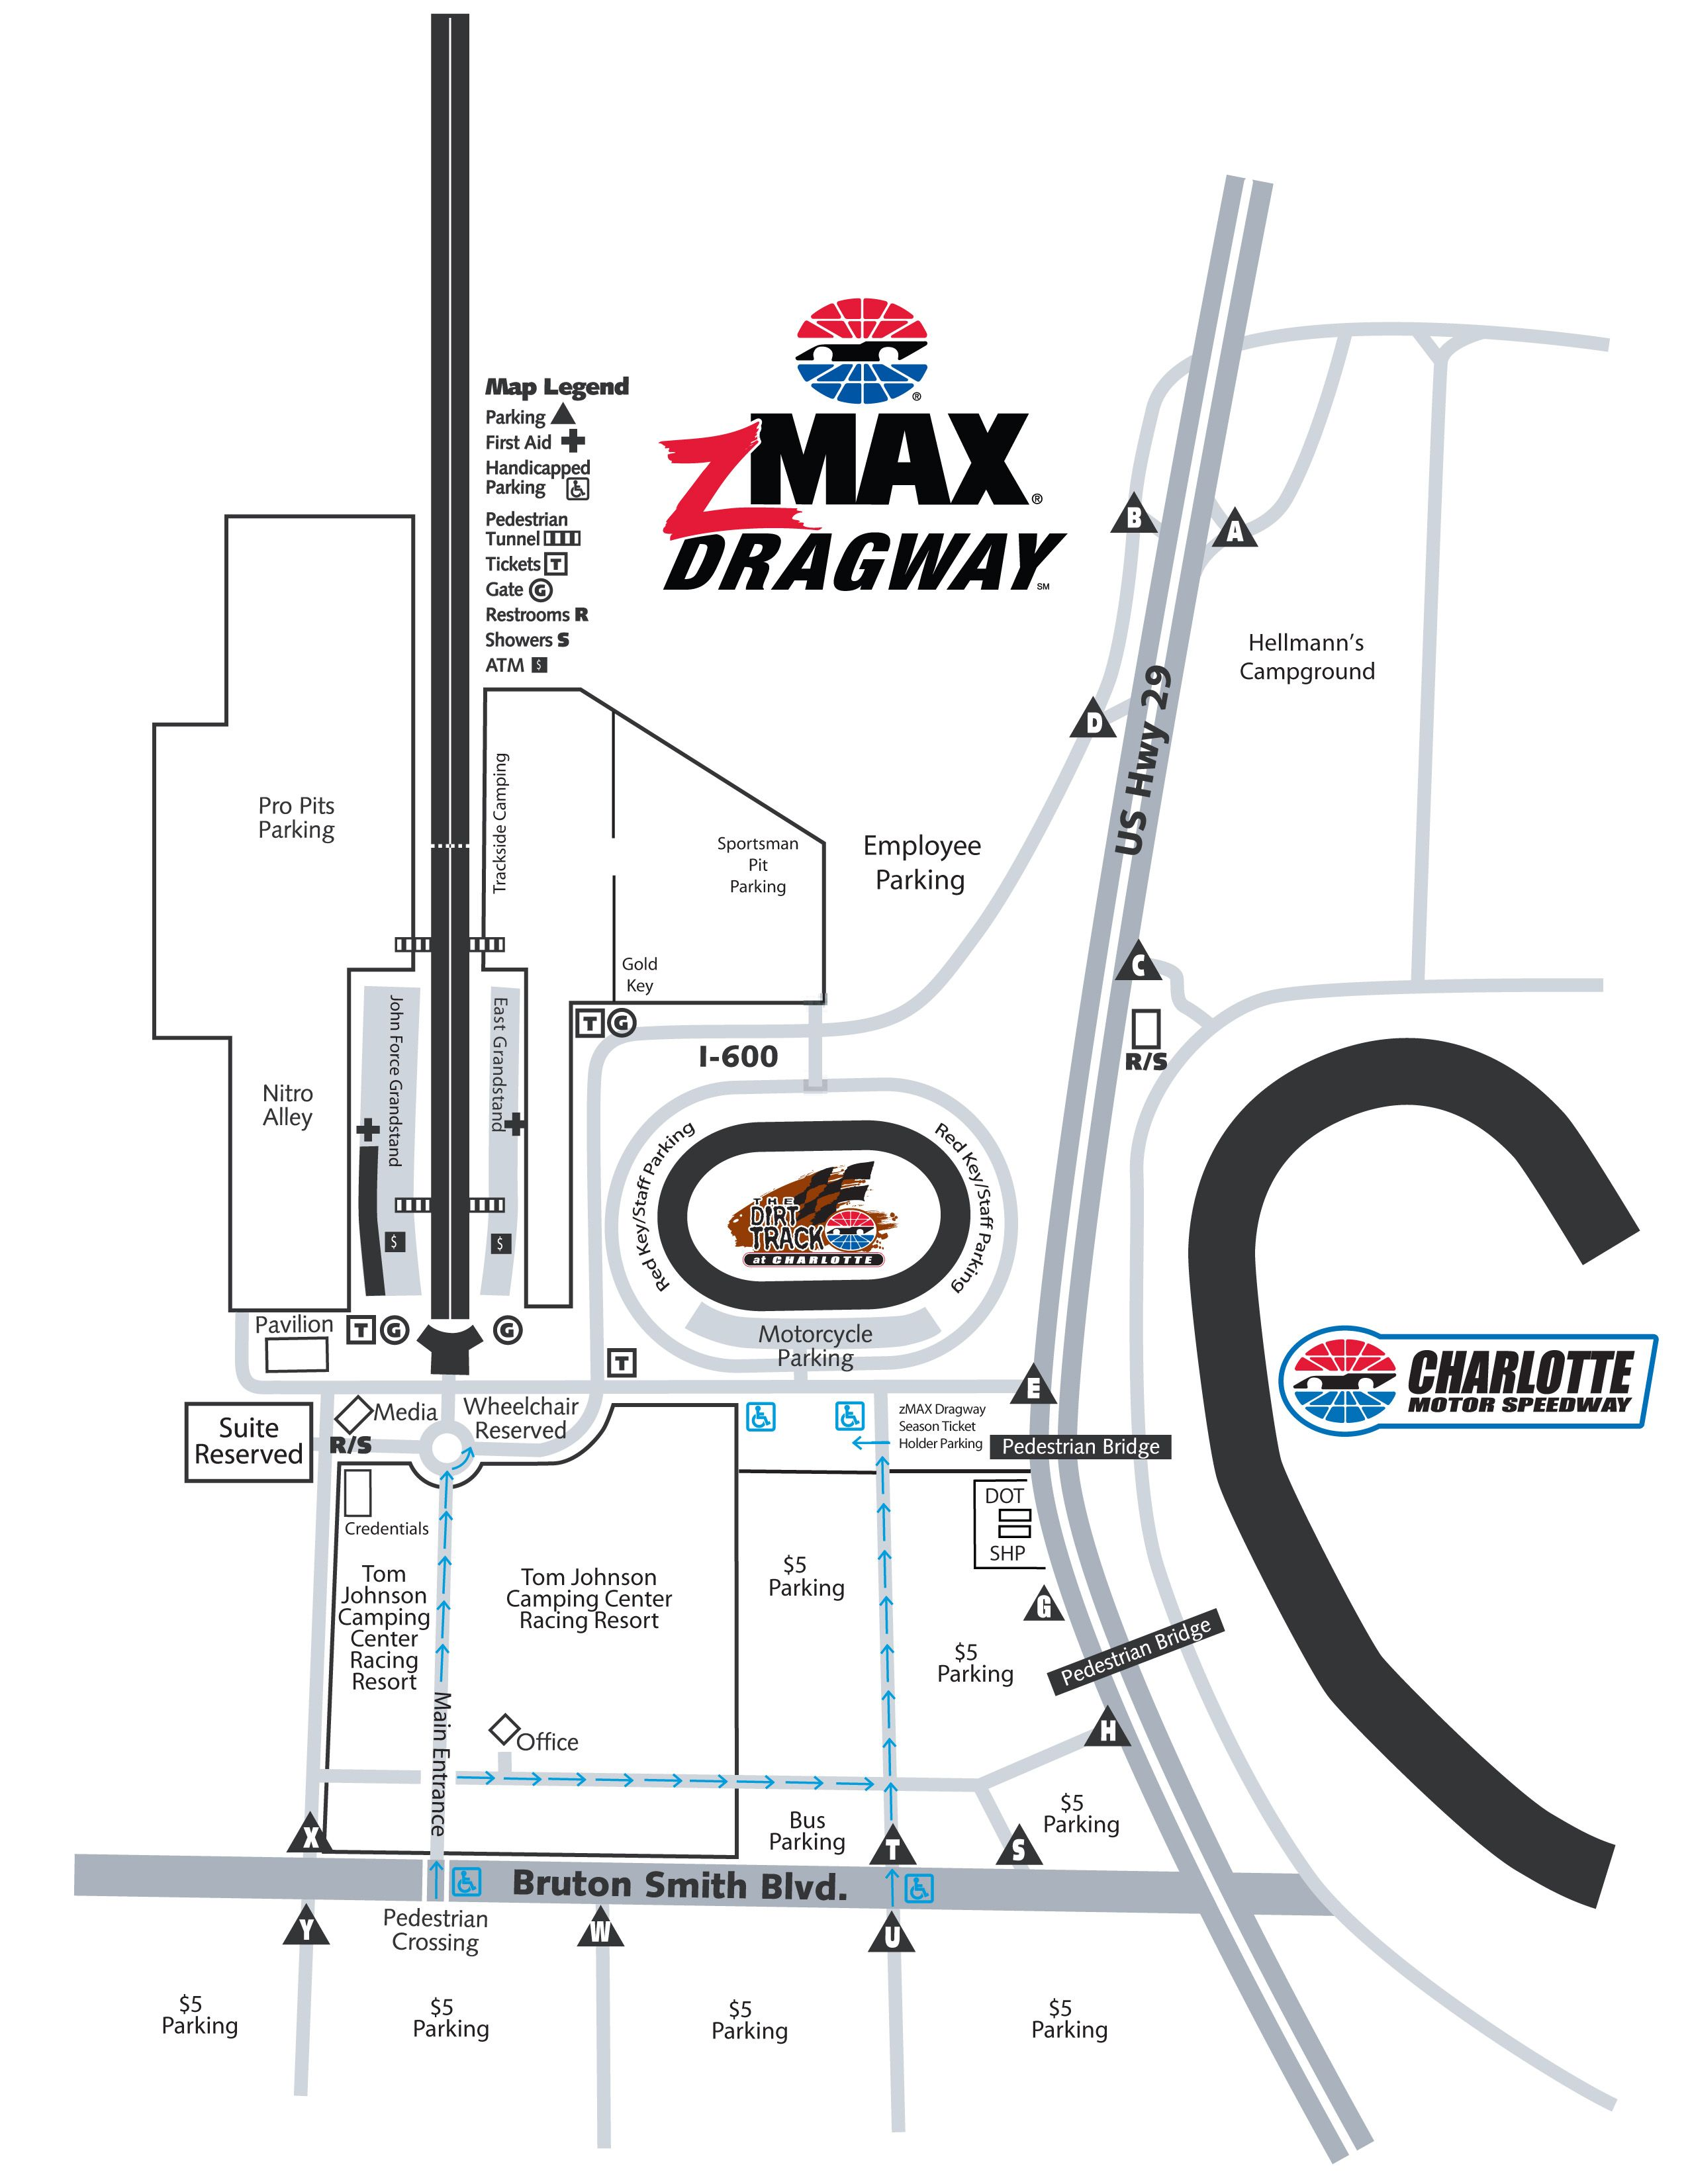 Zmax dragway parking and driving directions zmax dragway for Charlotte motor speedway drag racing